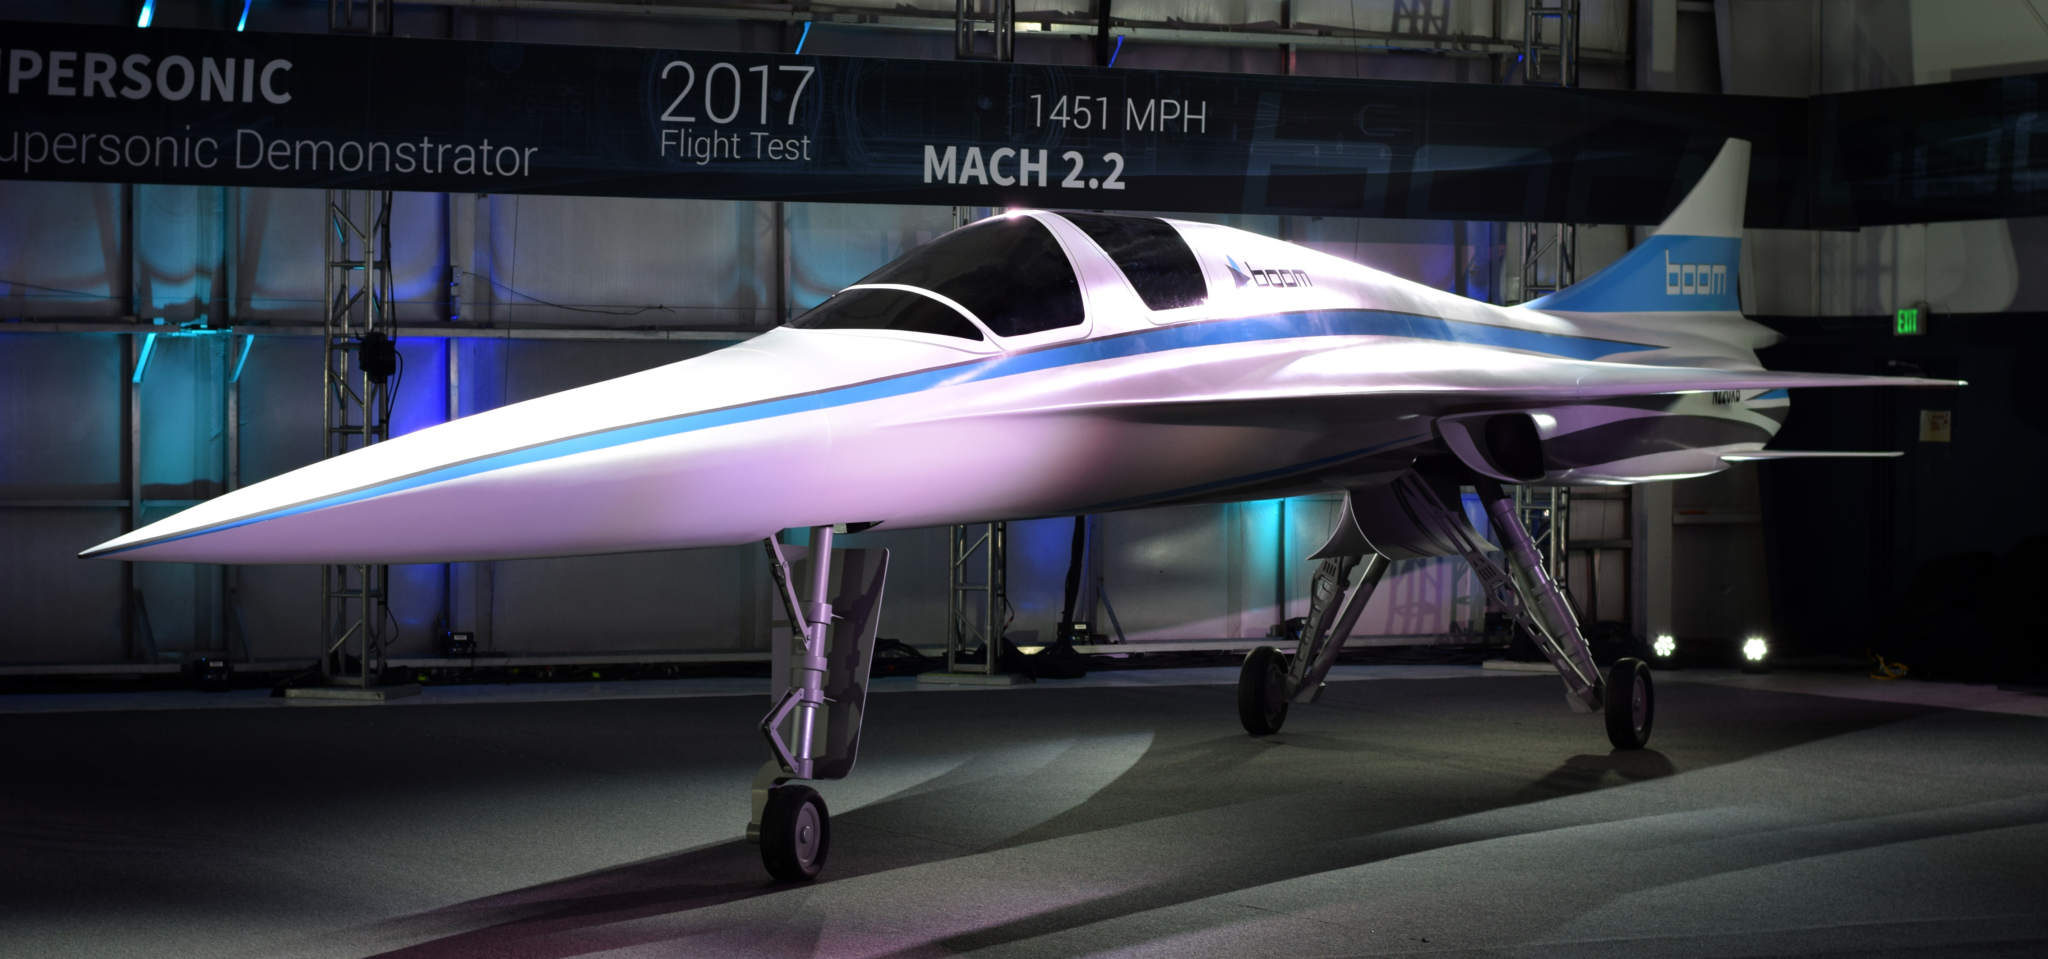 Boom's XB-1 supersonic demonstrator aircraft. Image via Business Wire.